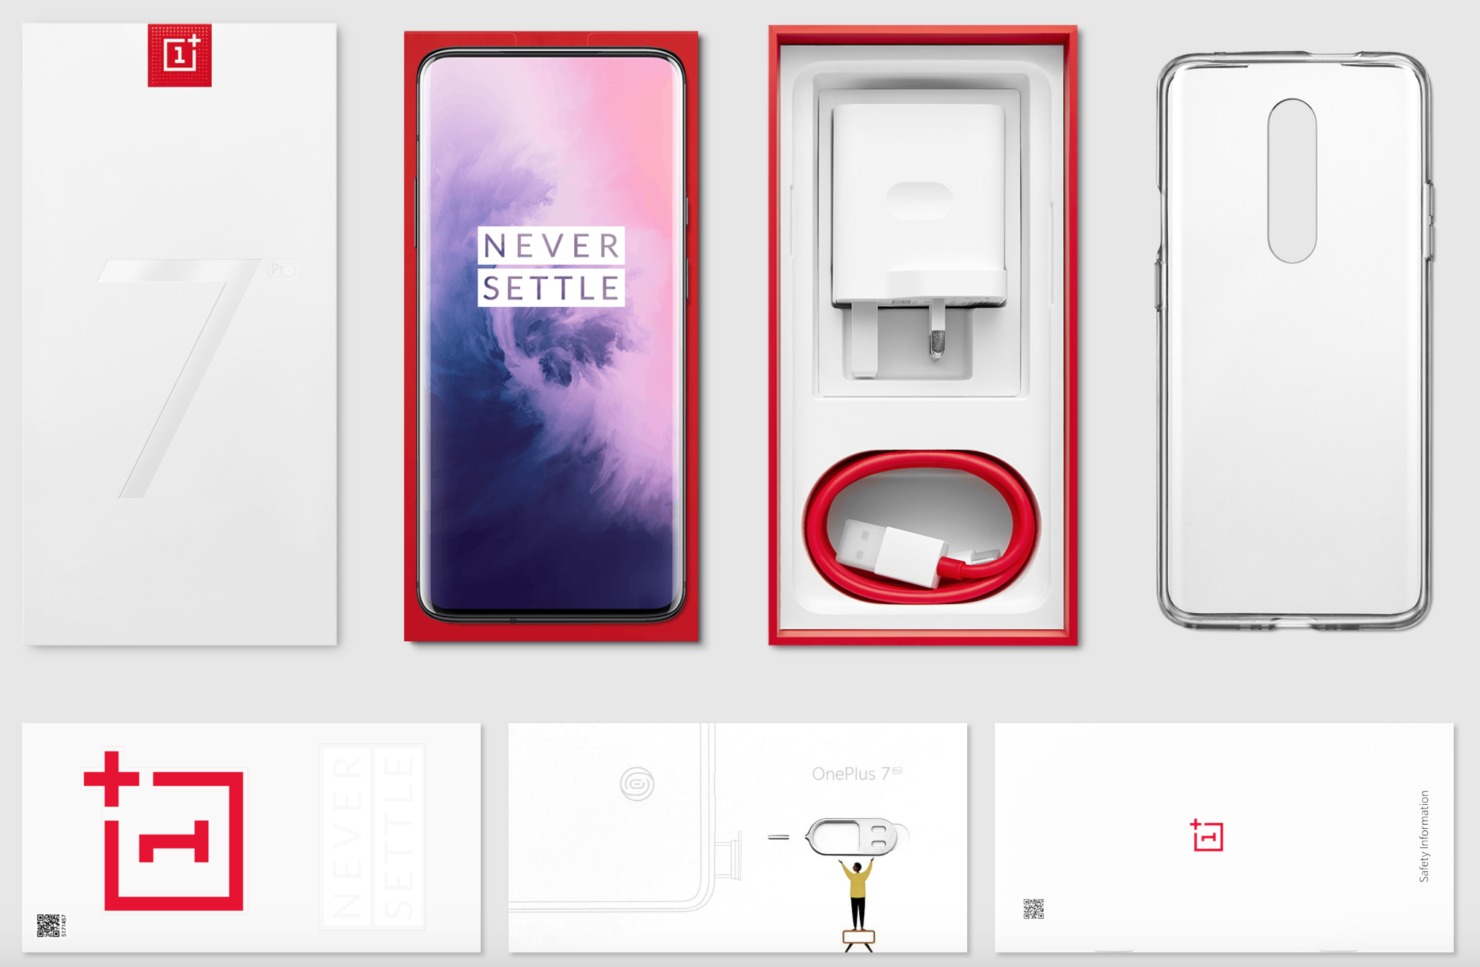 oneplus 7 pro discount featured